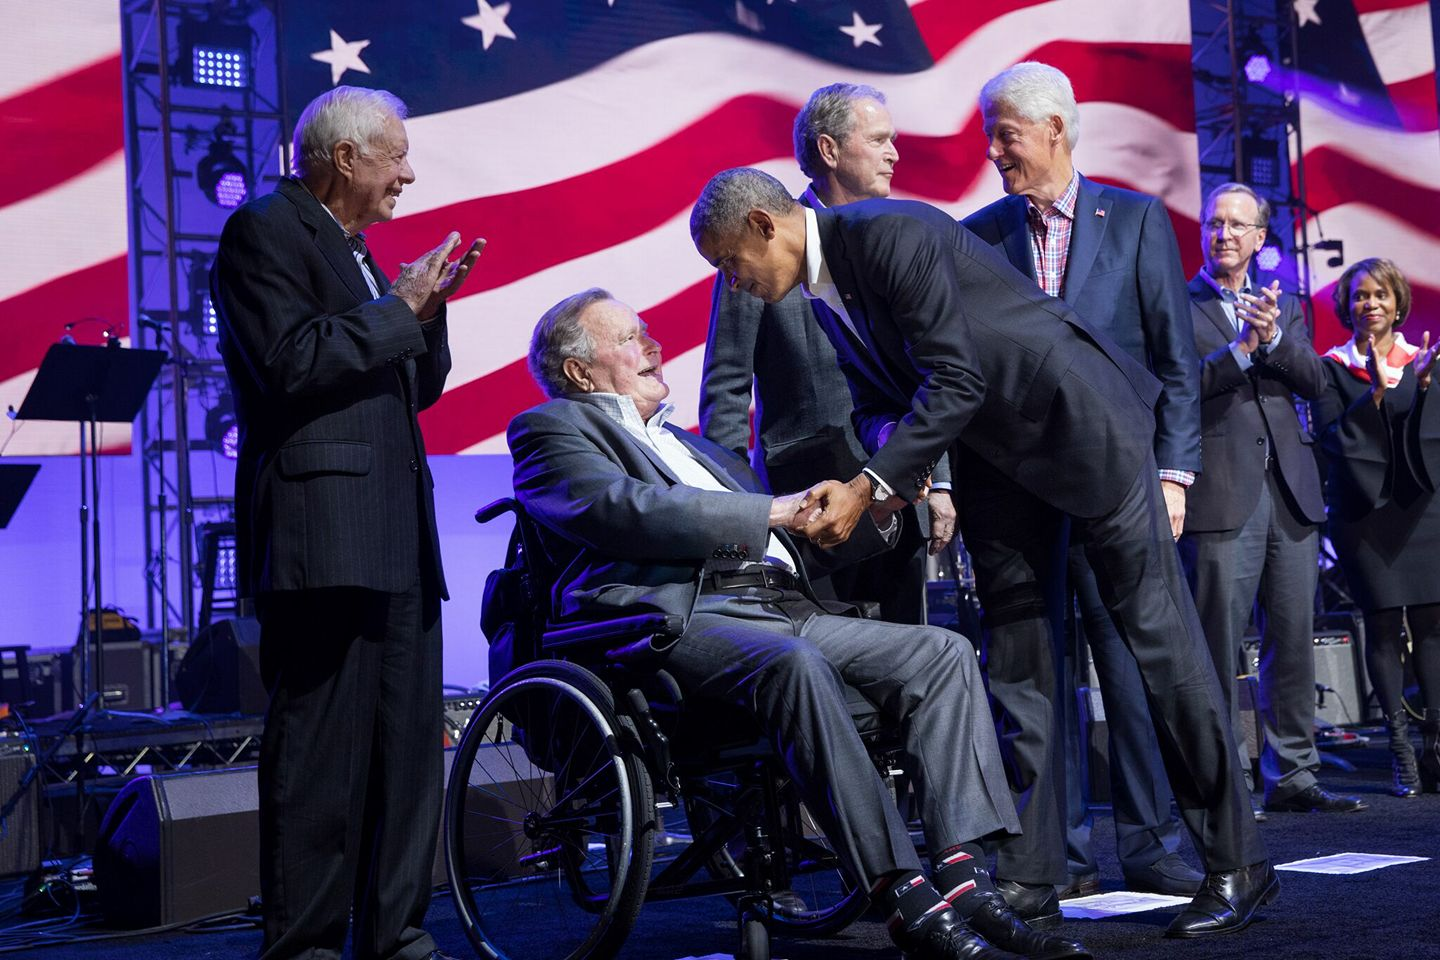 Photo of 5 presidents from One America Appeal Concert.jpg